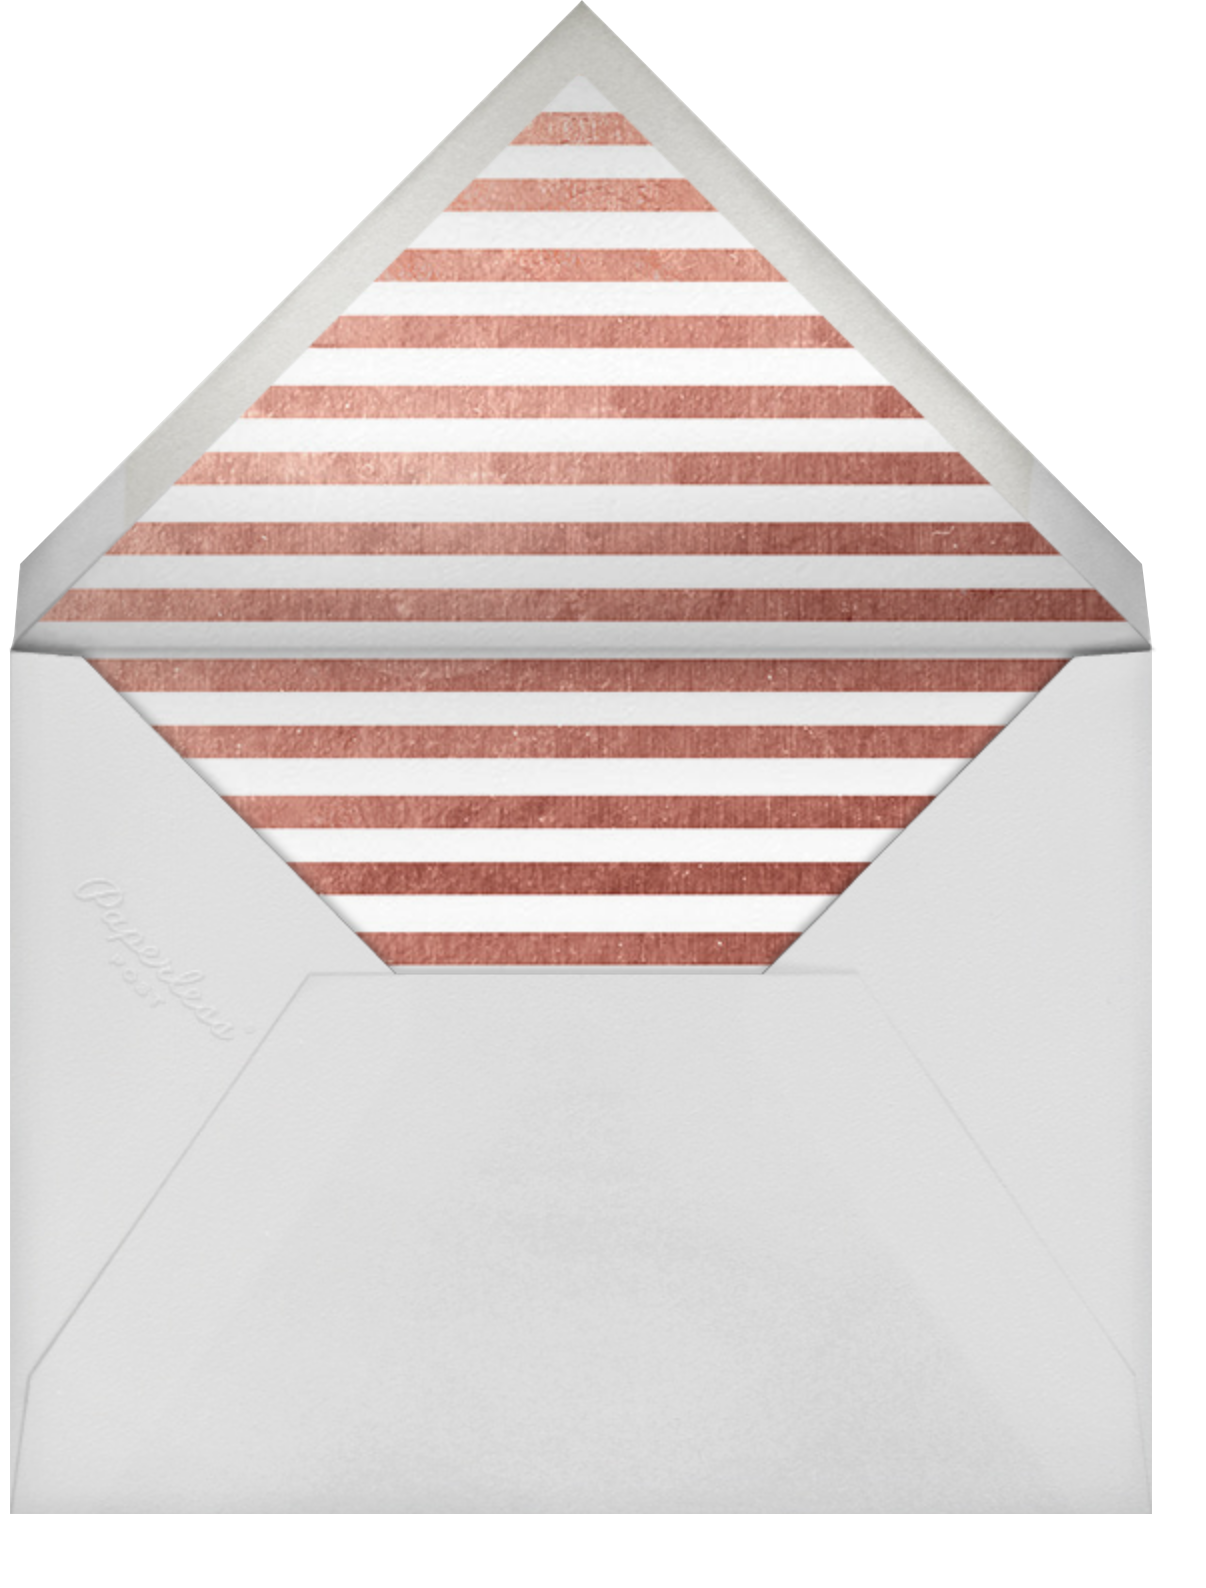 Saint-Preux (Photo) - White/Rose Gold - Paperless Post - Photo  - envelope back